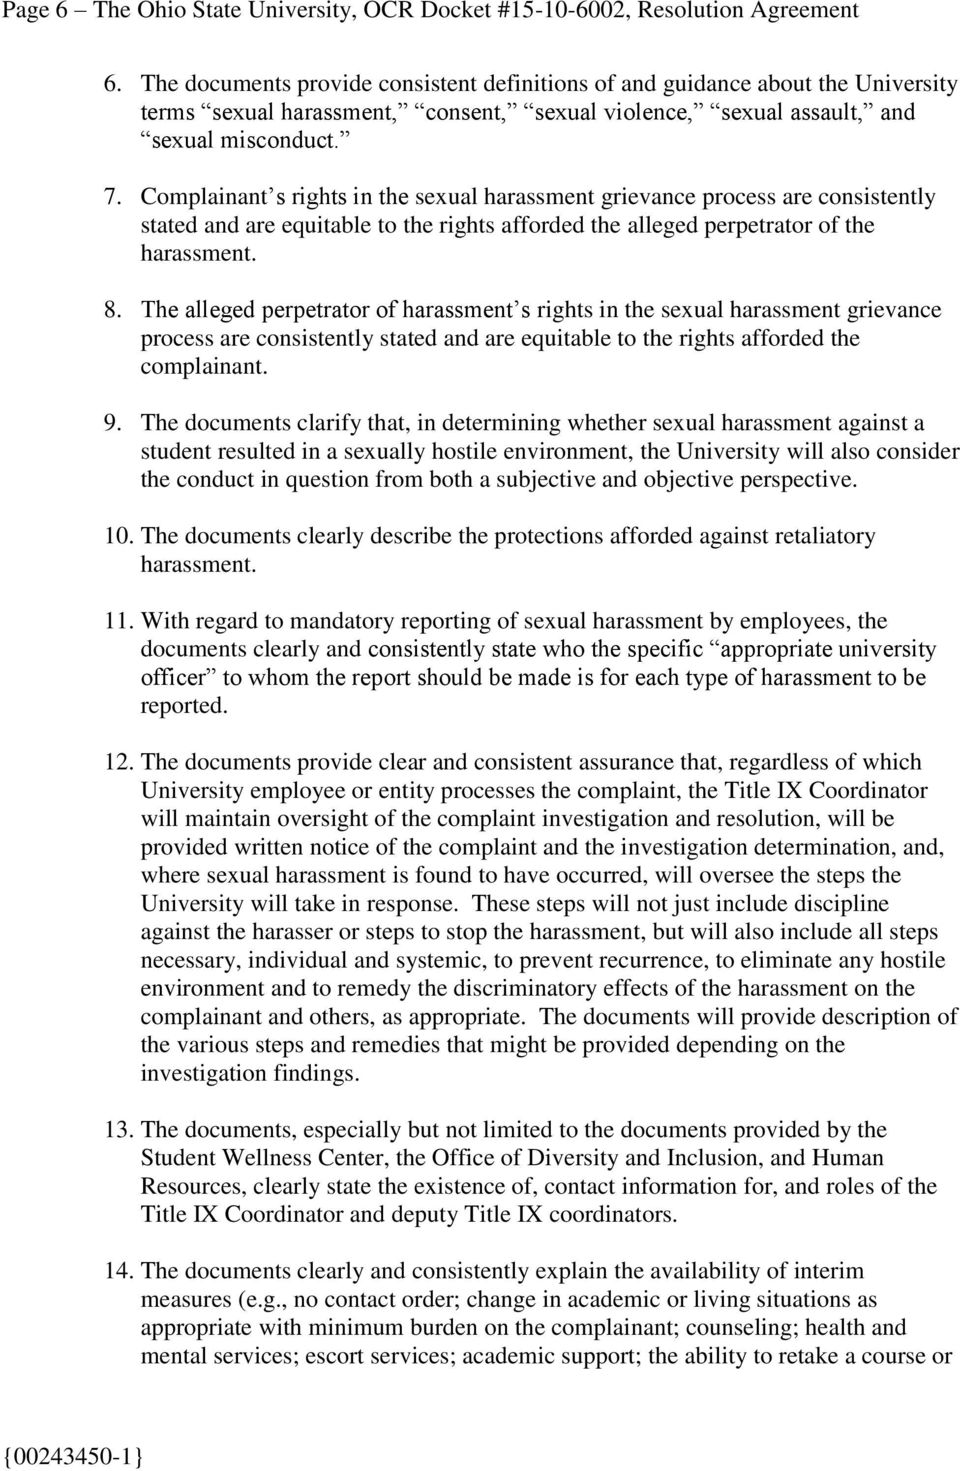 Complainant s rights in the sexual harassment grievance process are consistently stated and are equitable to the rights afforded the alleged perpetrator of the harassment. 8.